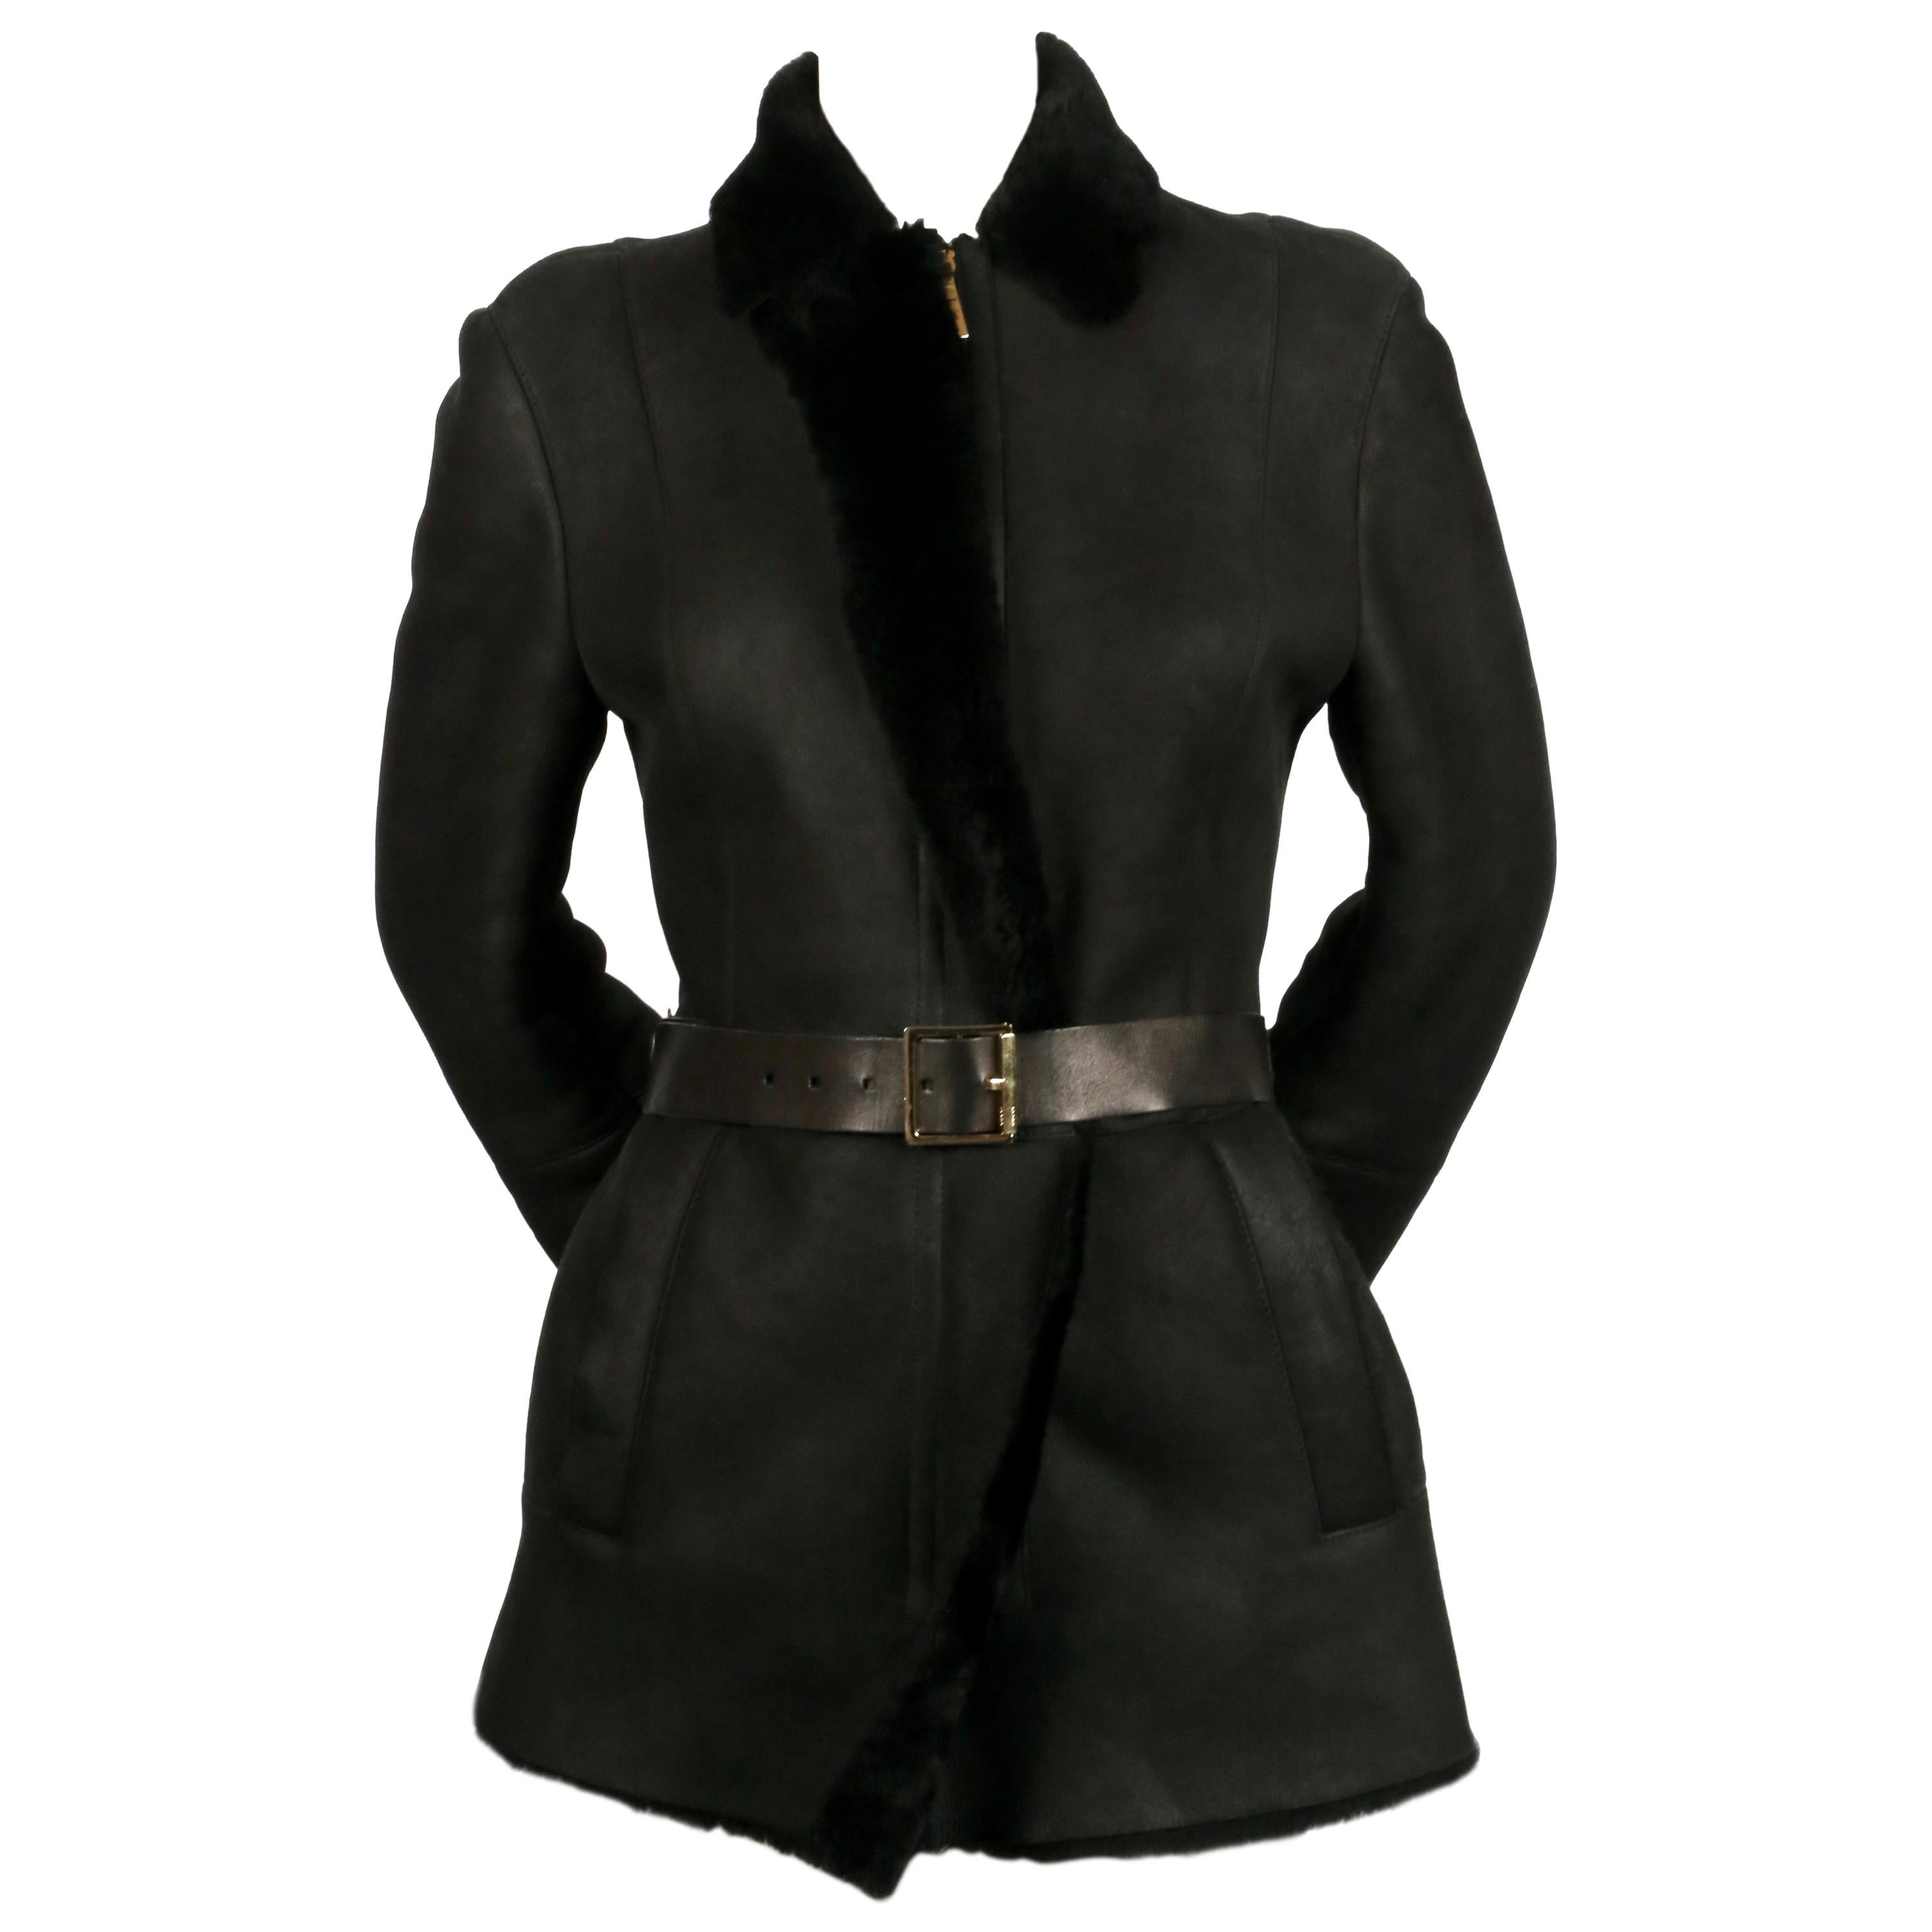 TOM FORD for GUCCI fitted black shearling coat with leather belt